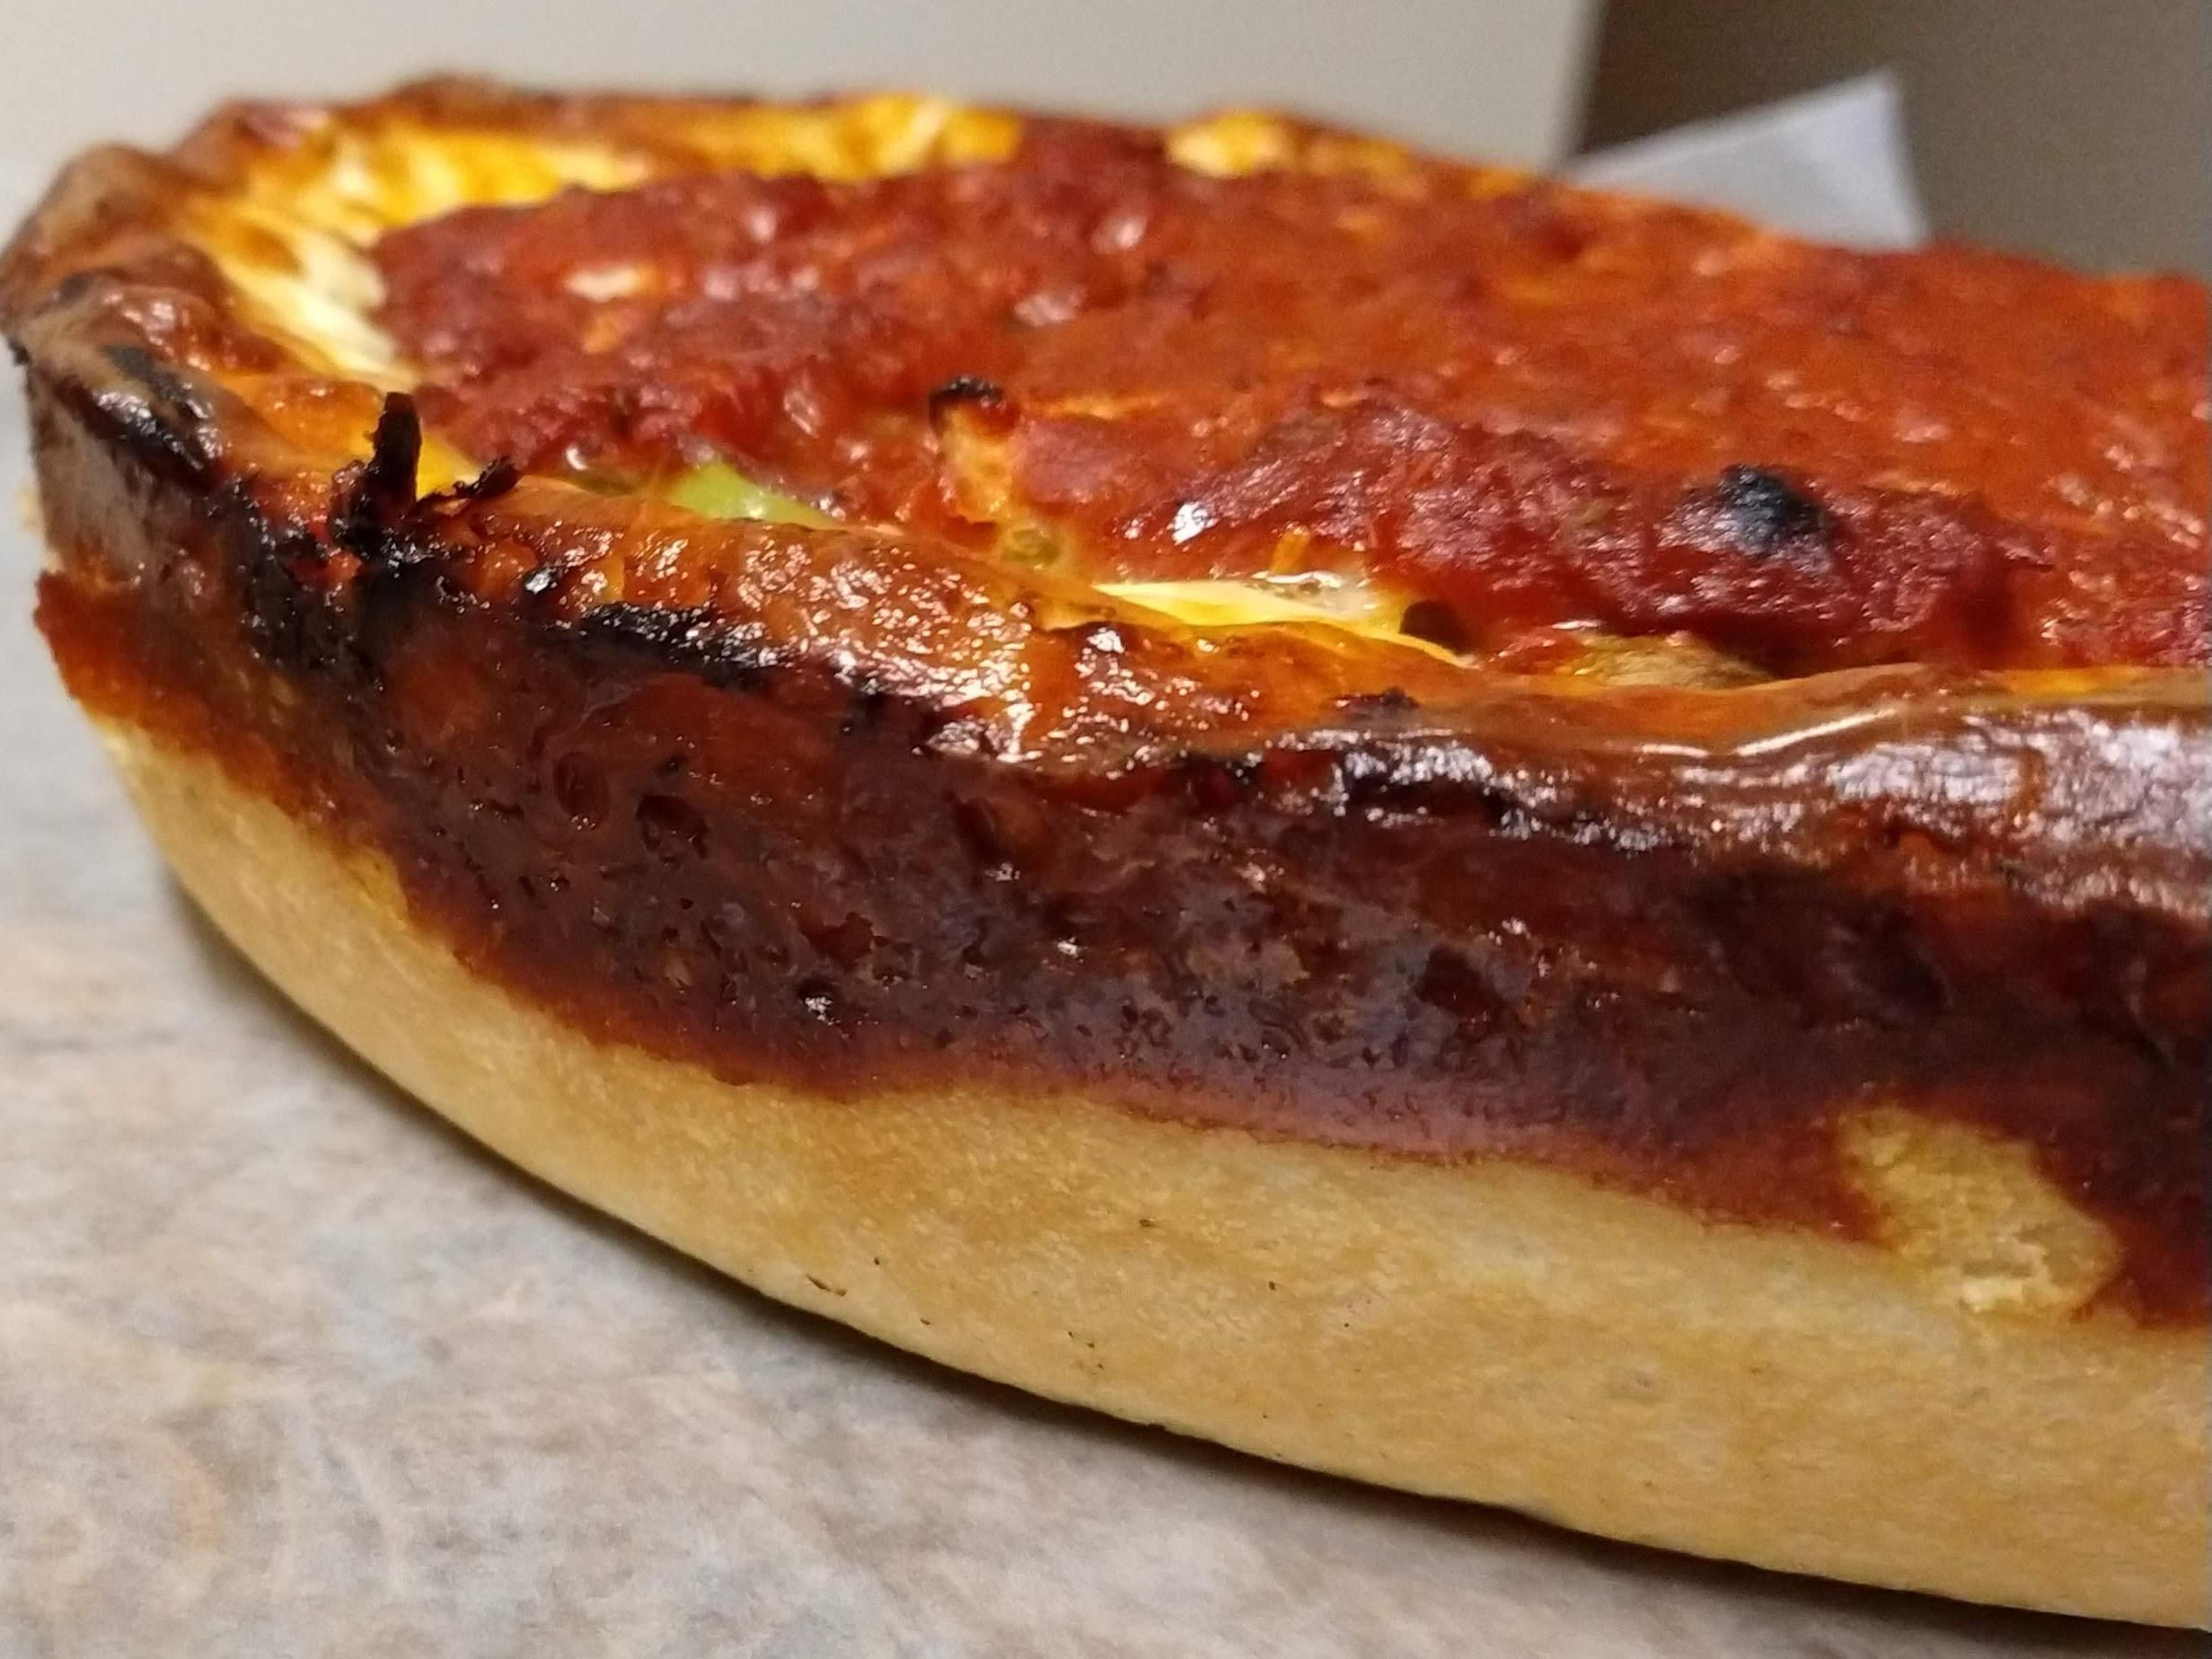 Deep dish with burnt cheese crust. #Pizza #Pizzas #food #foods